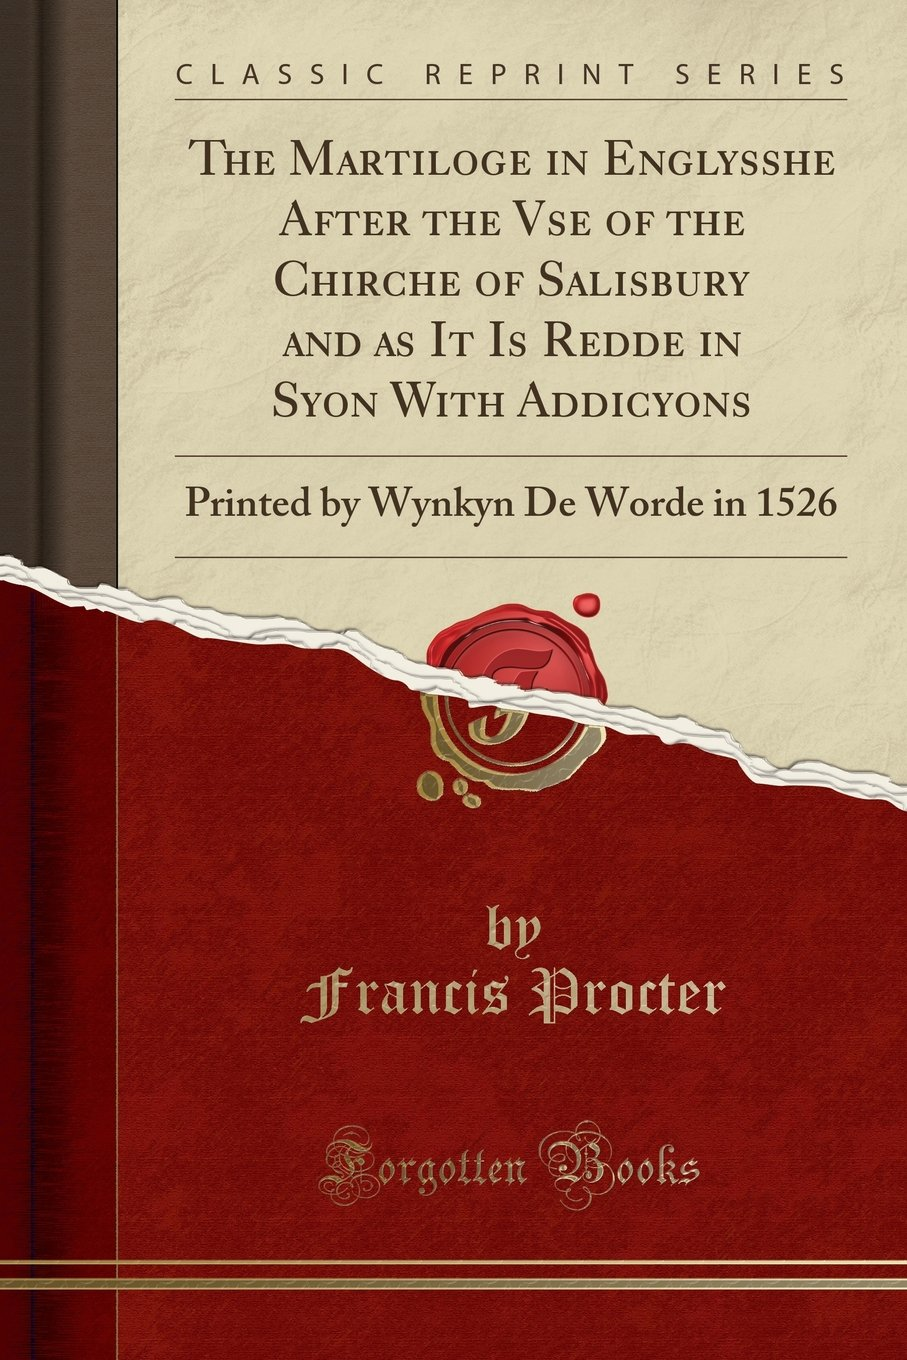 The Martiloge in Englysshe After the Vse of the Chirche of Salisbury and as It Is Redde in Syon With Addicyons: Printed by Wynkyn De Worde in 1526 (Classic Reprint) pdf